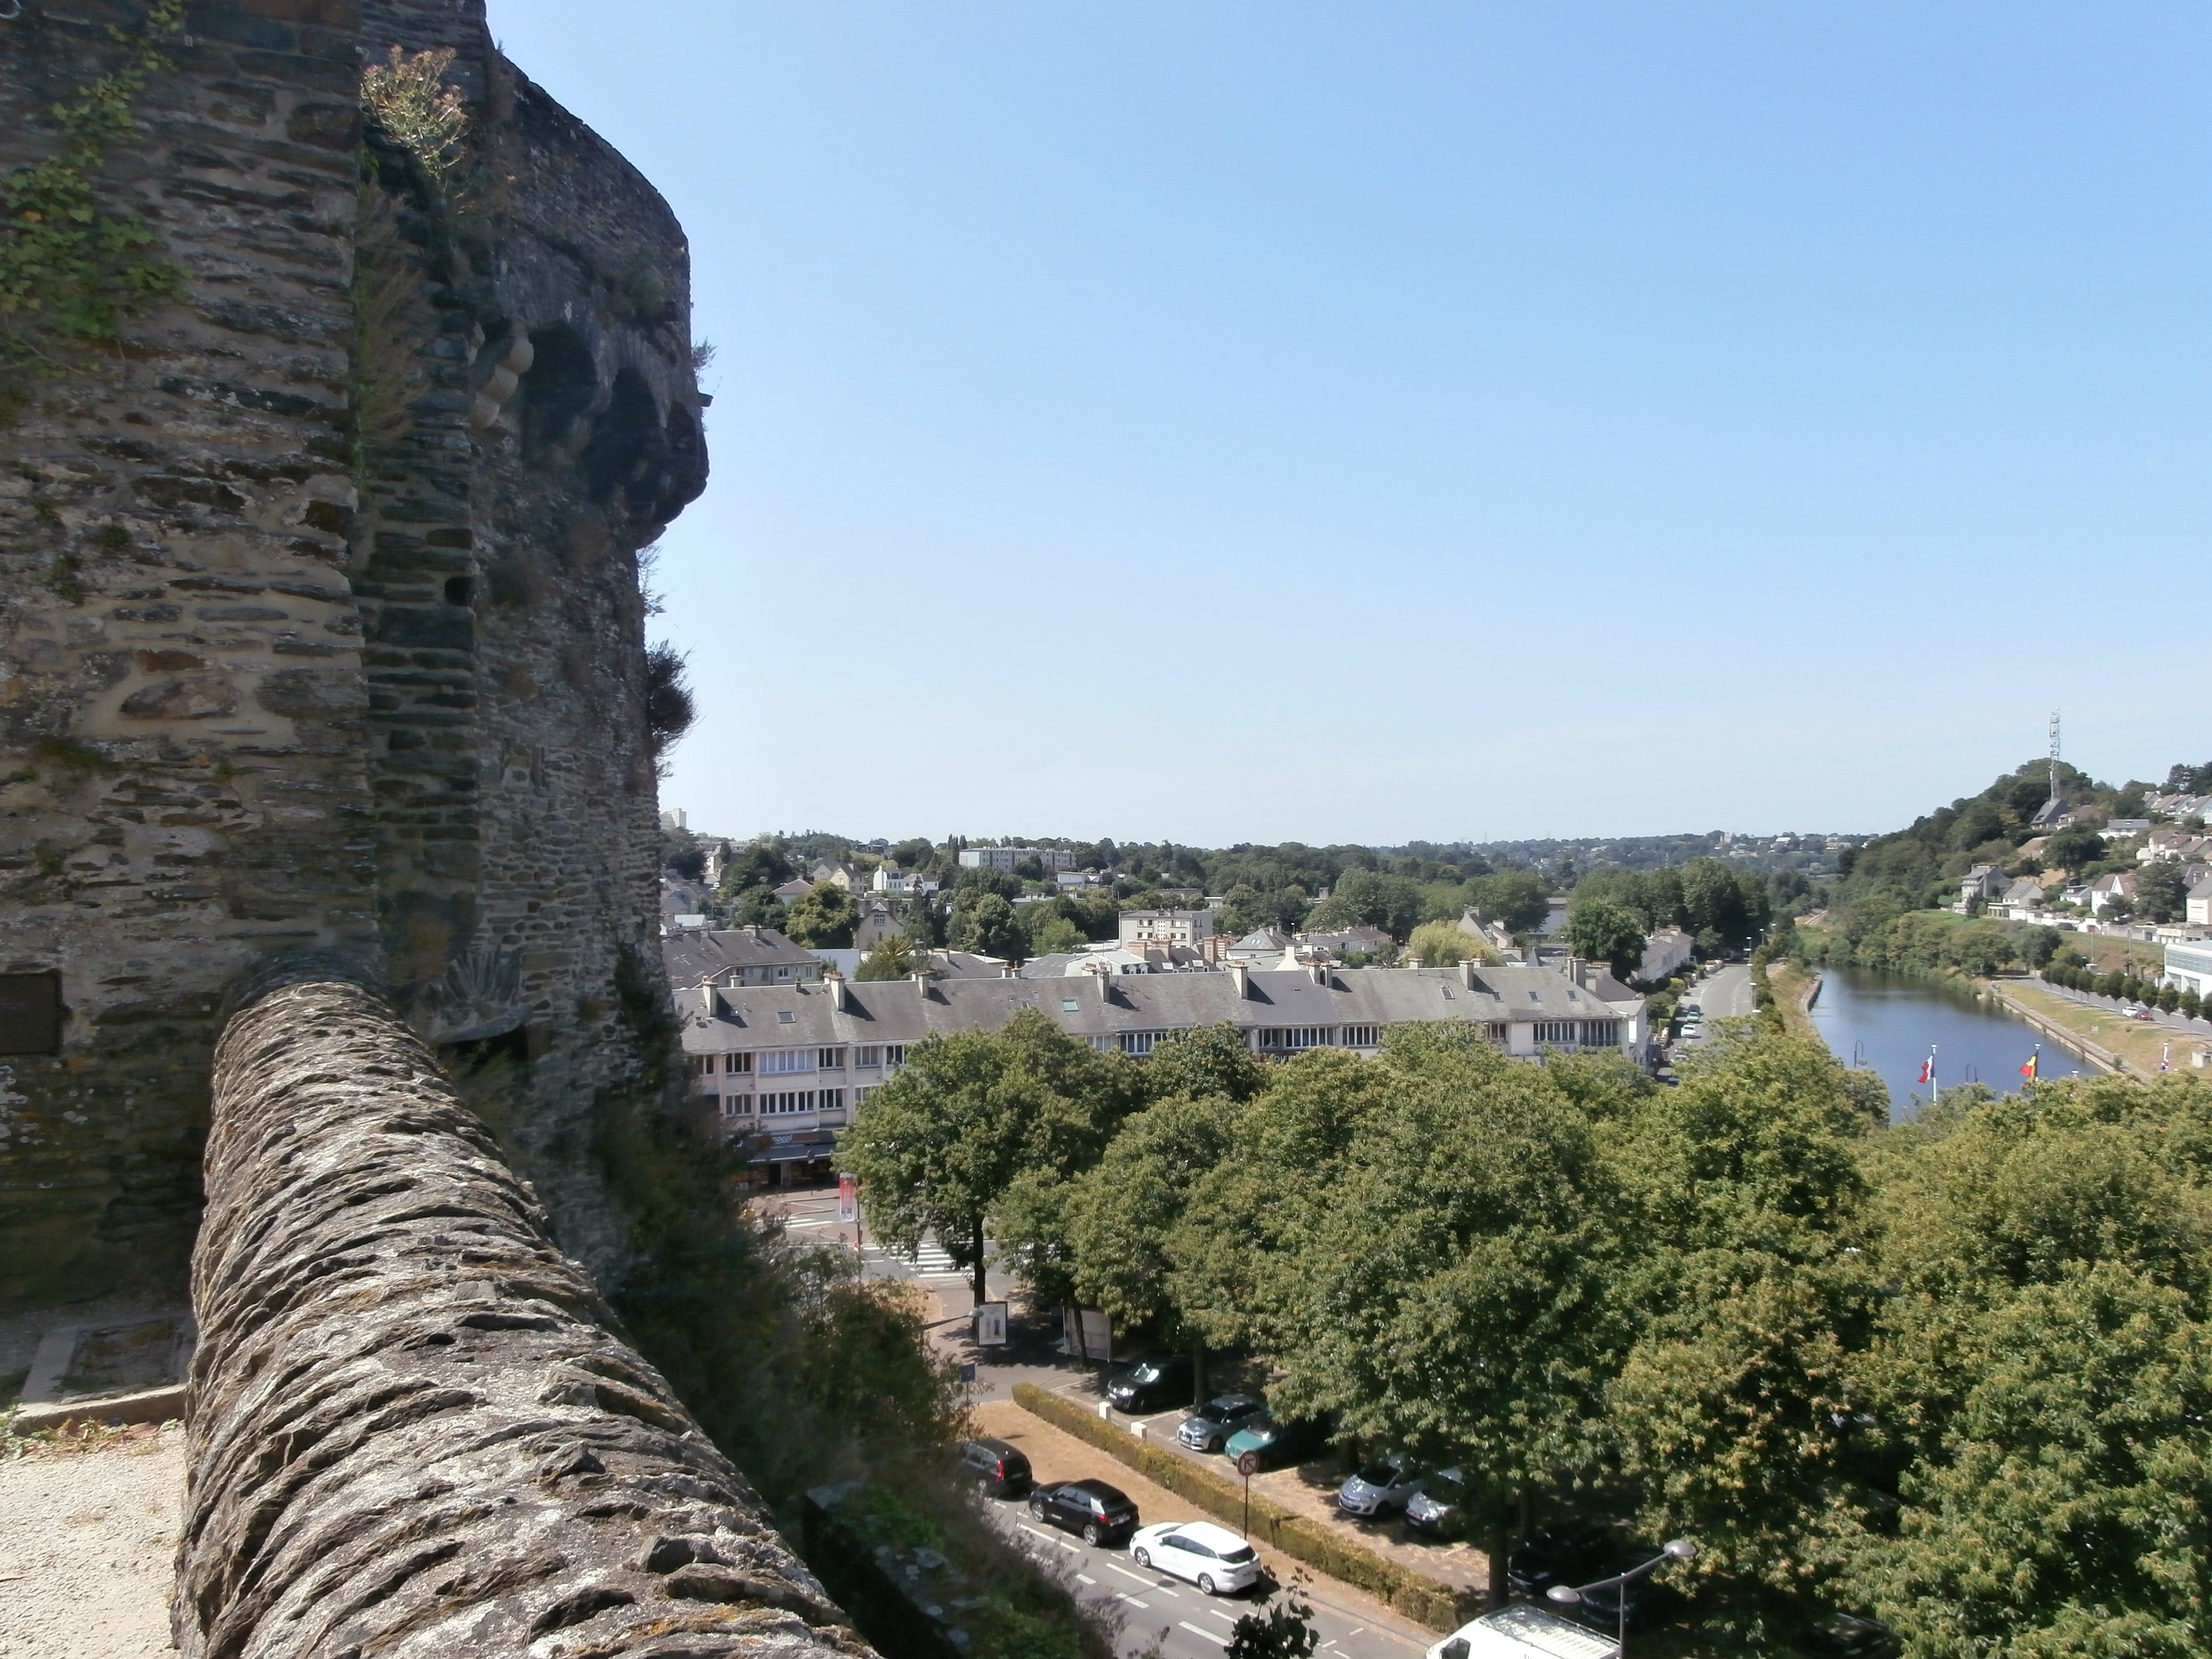 View from the city walls